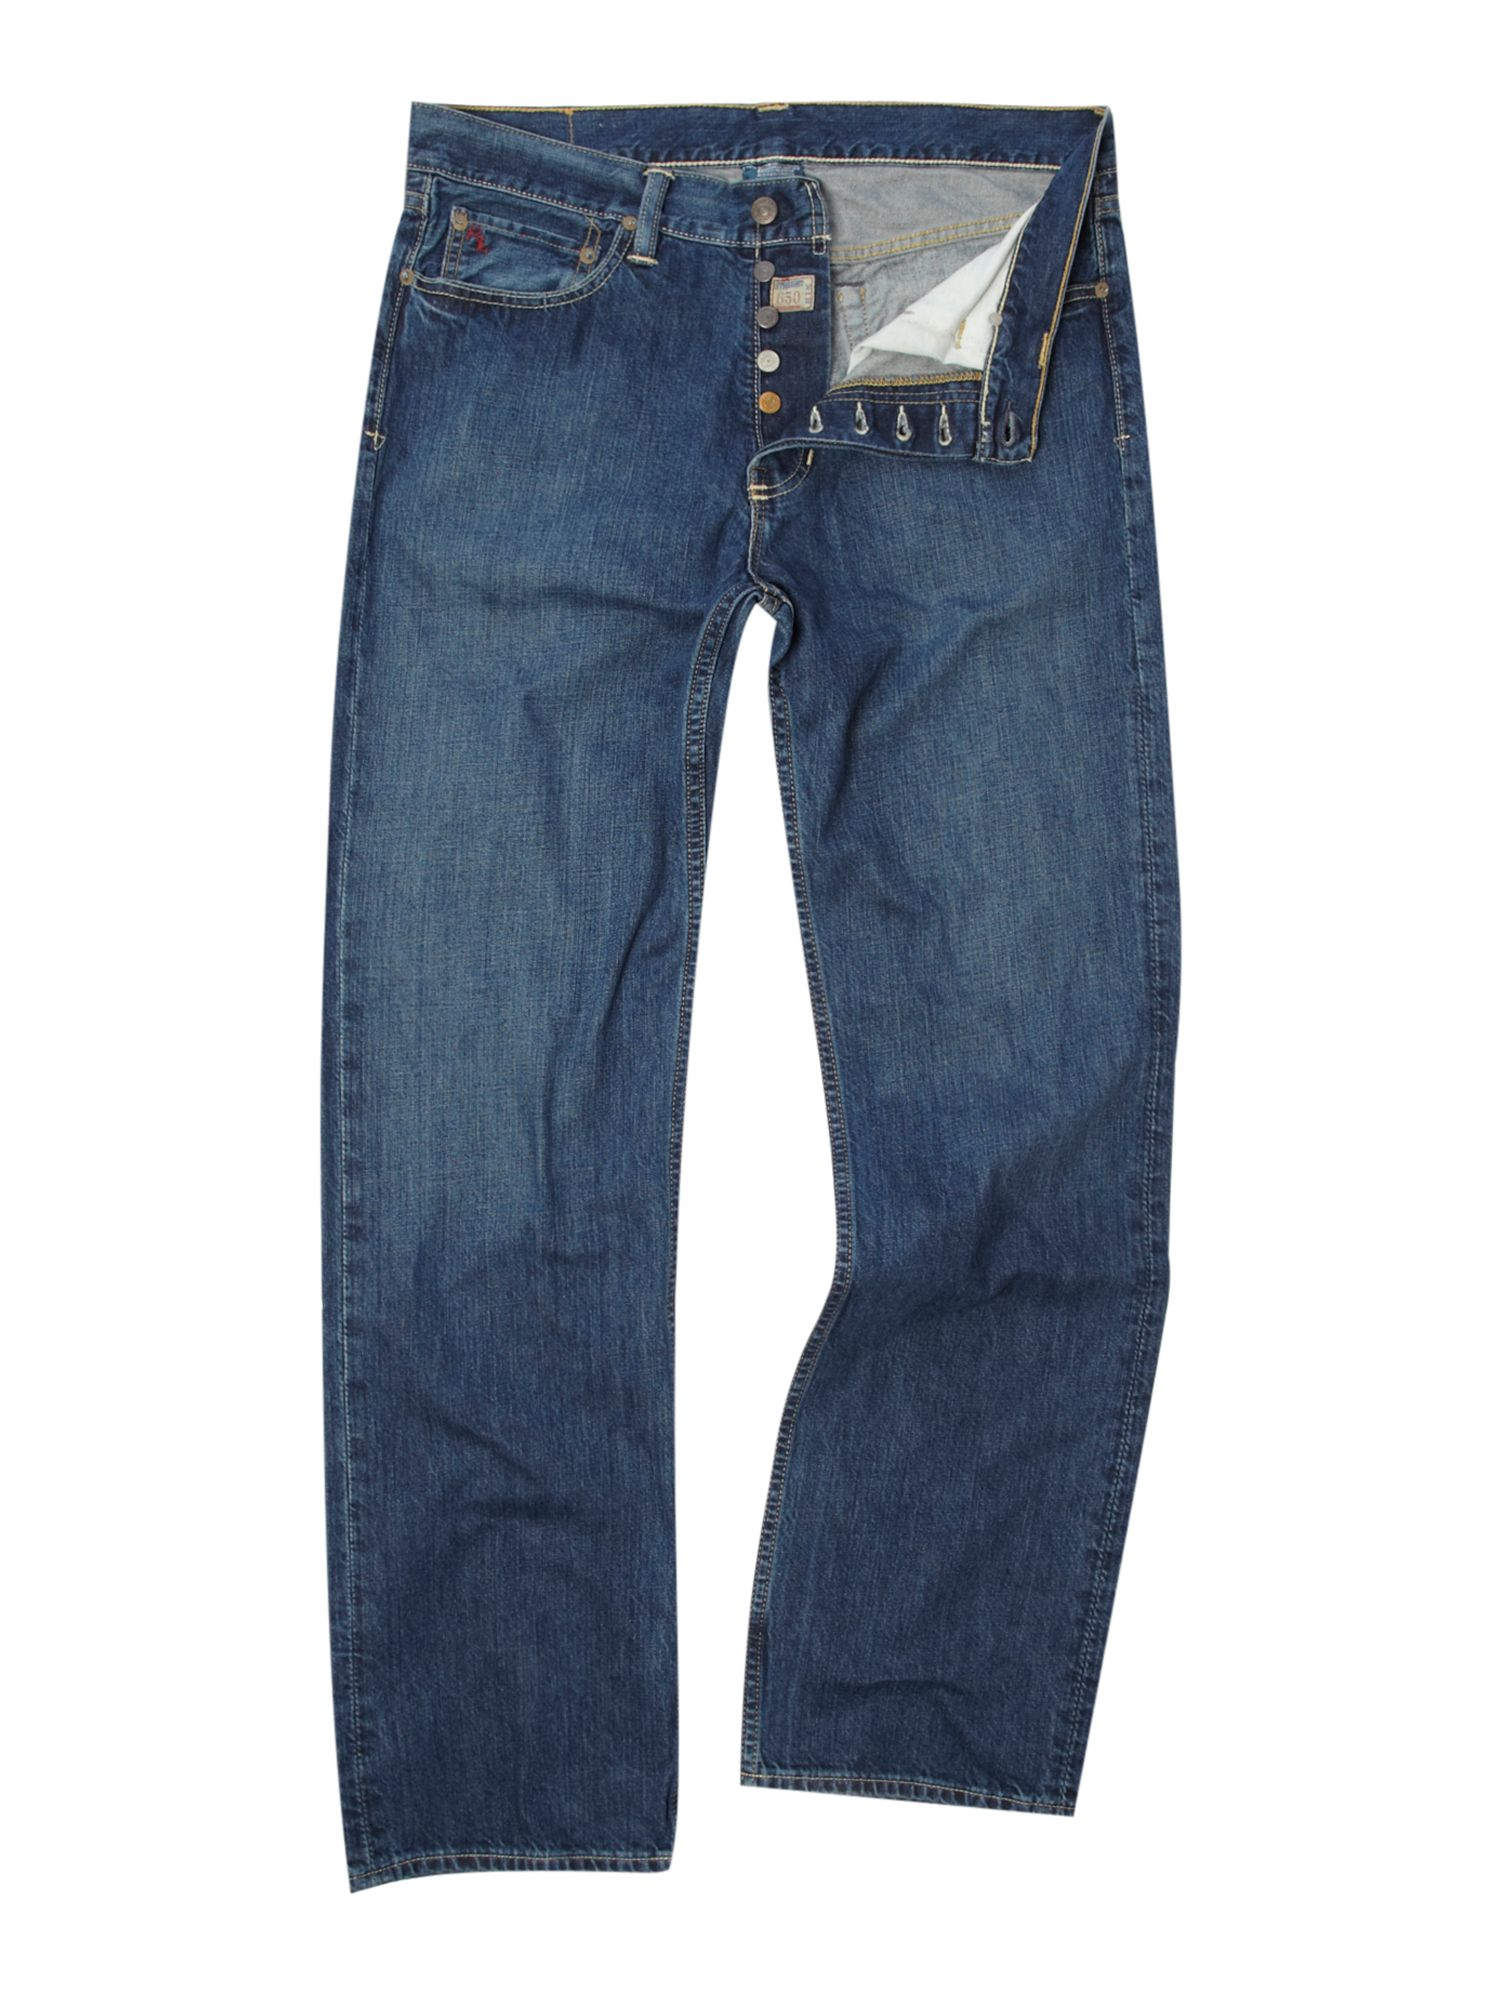 polo ralph lauren stanton straight fitted jeans in blue for men lyst. Black Bedroom Furniture Sets. Home Design Ideas